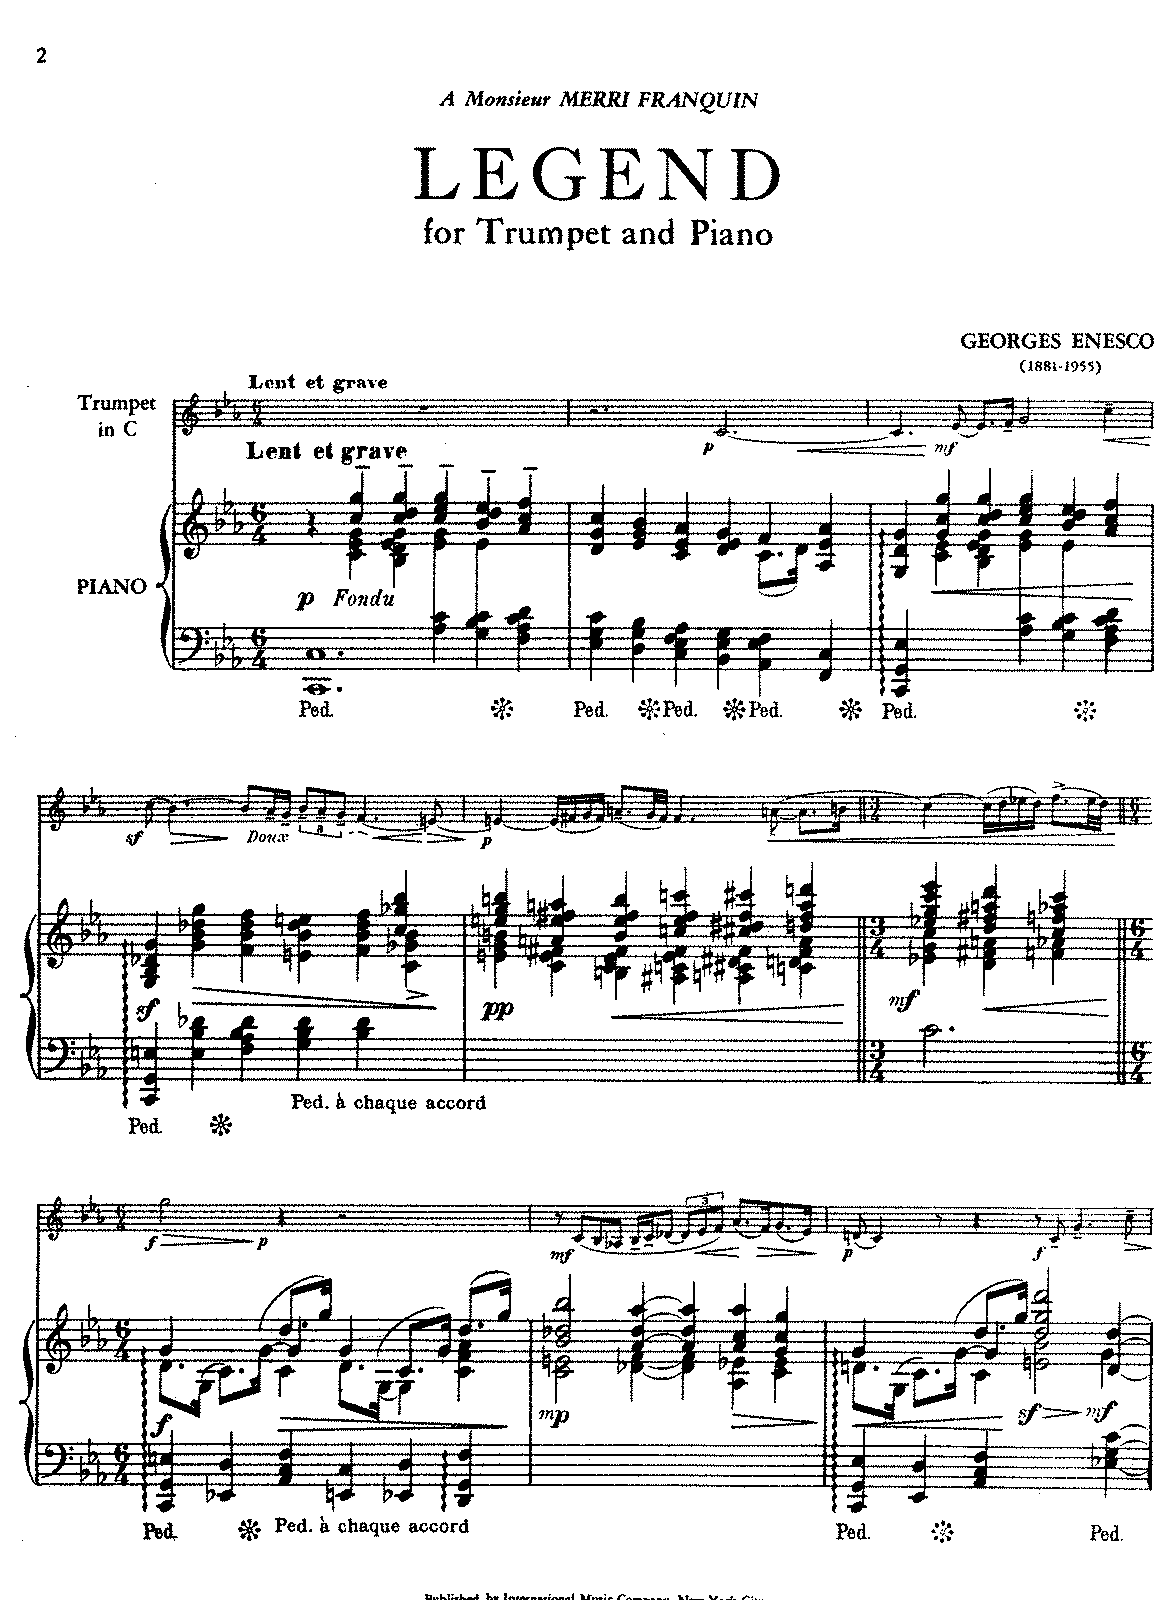 Enesco - Légende (trumpet and piano).pdf